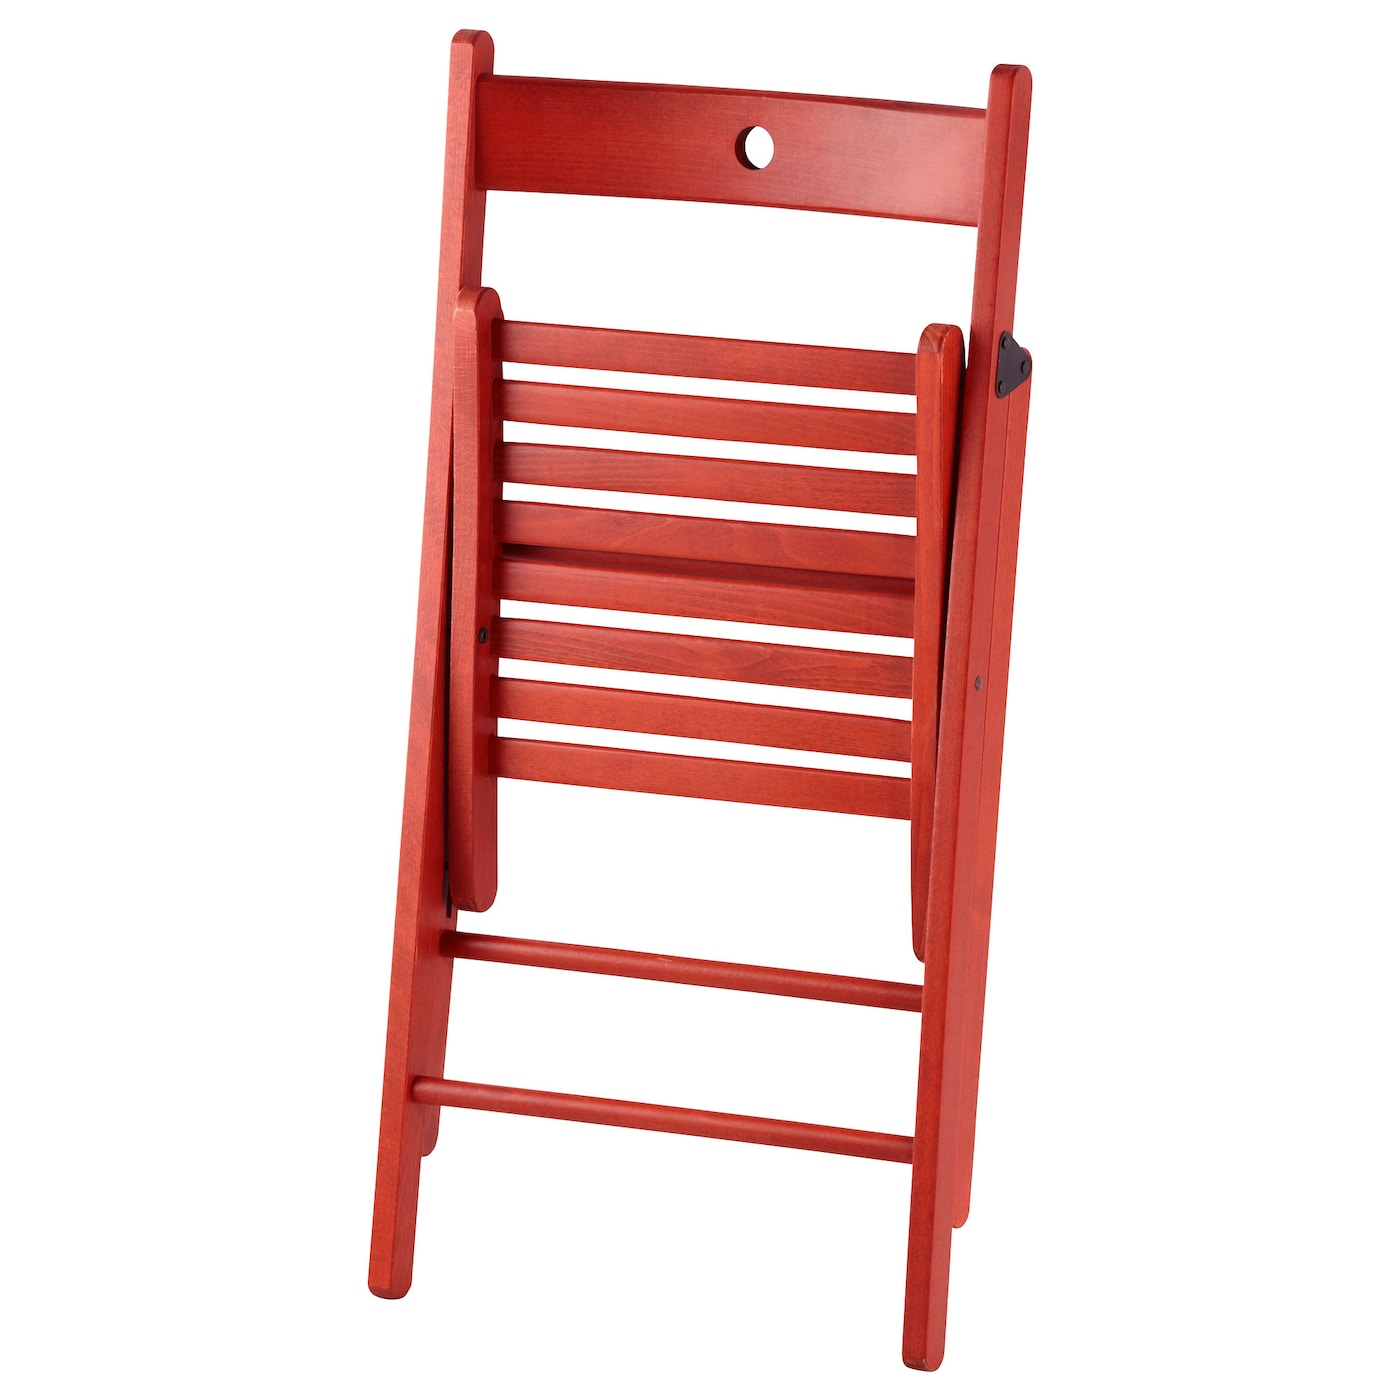 IKEA TERJE Folding Chair You Can Fold The Chair, So It Takes Less Space When